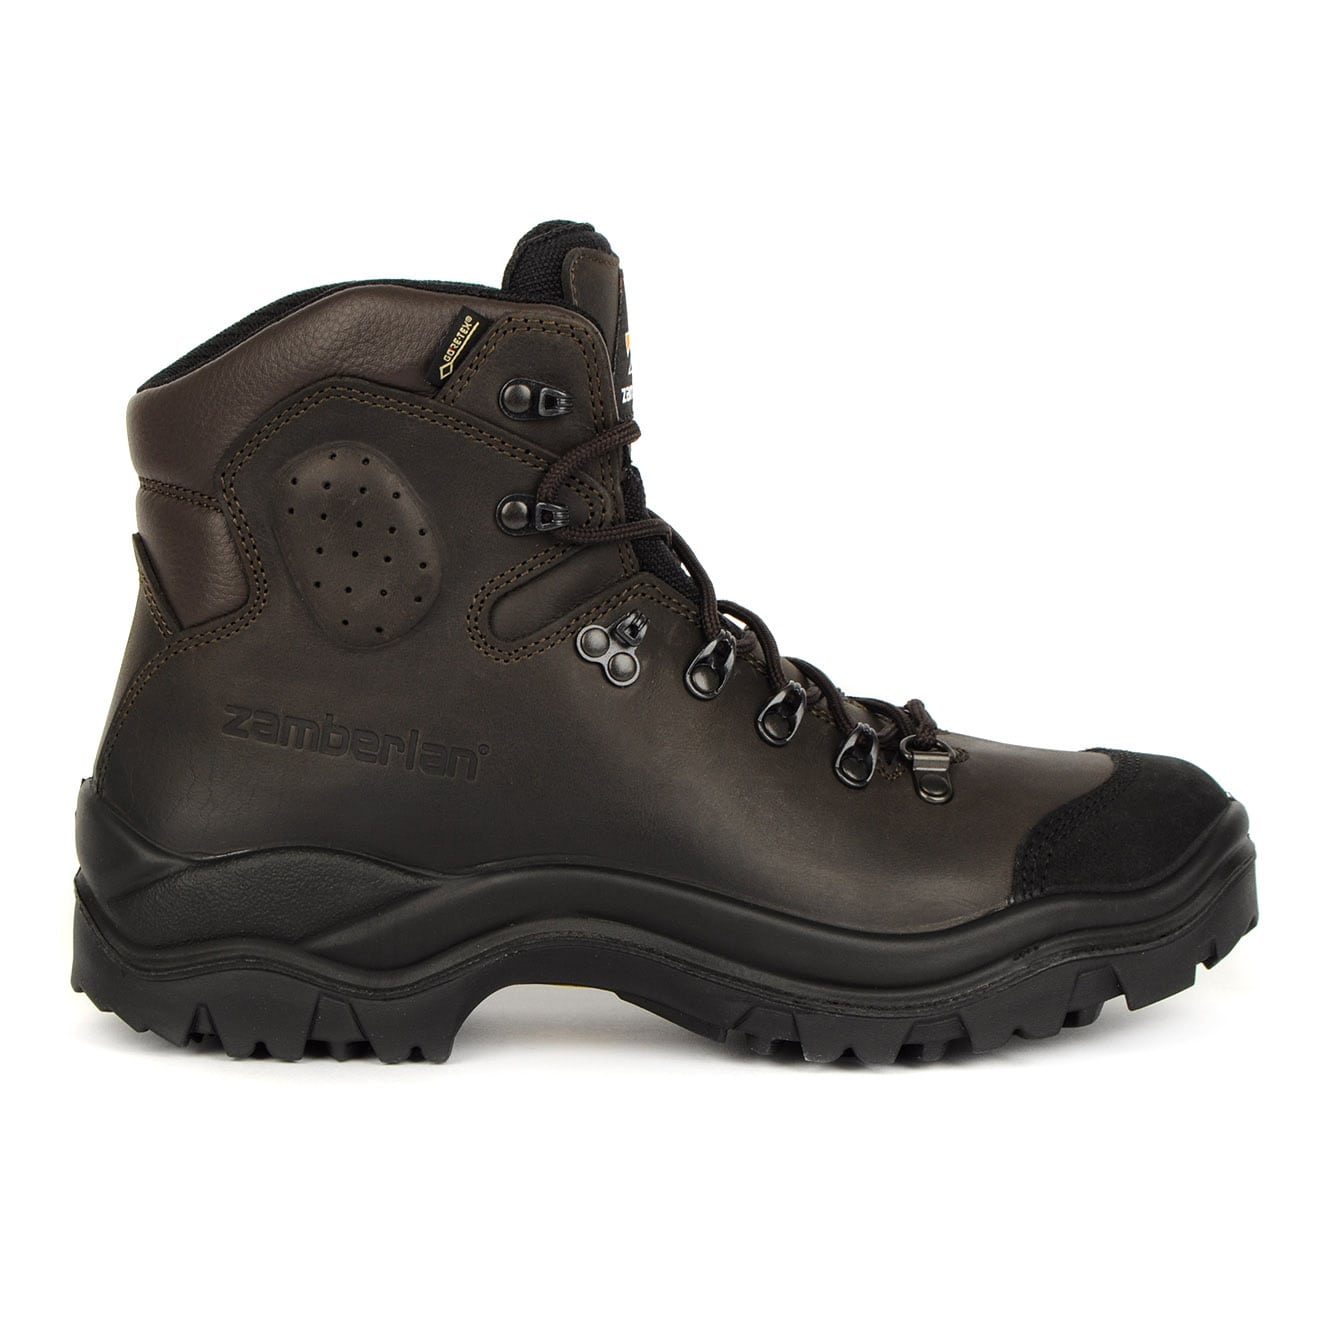 Zamberlan 162 New Steens Goretex Boot Waxed Brown